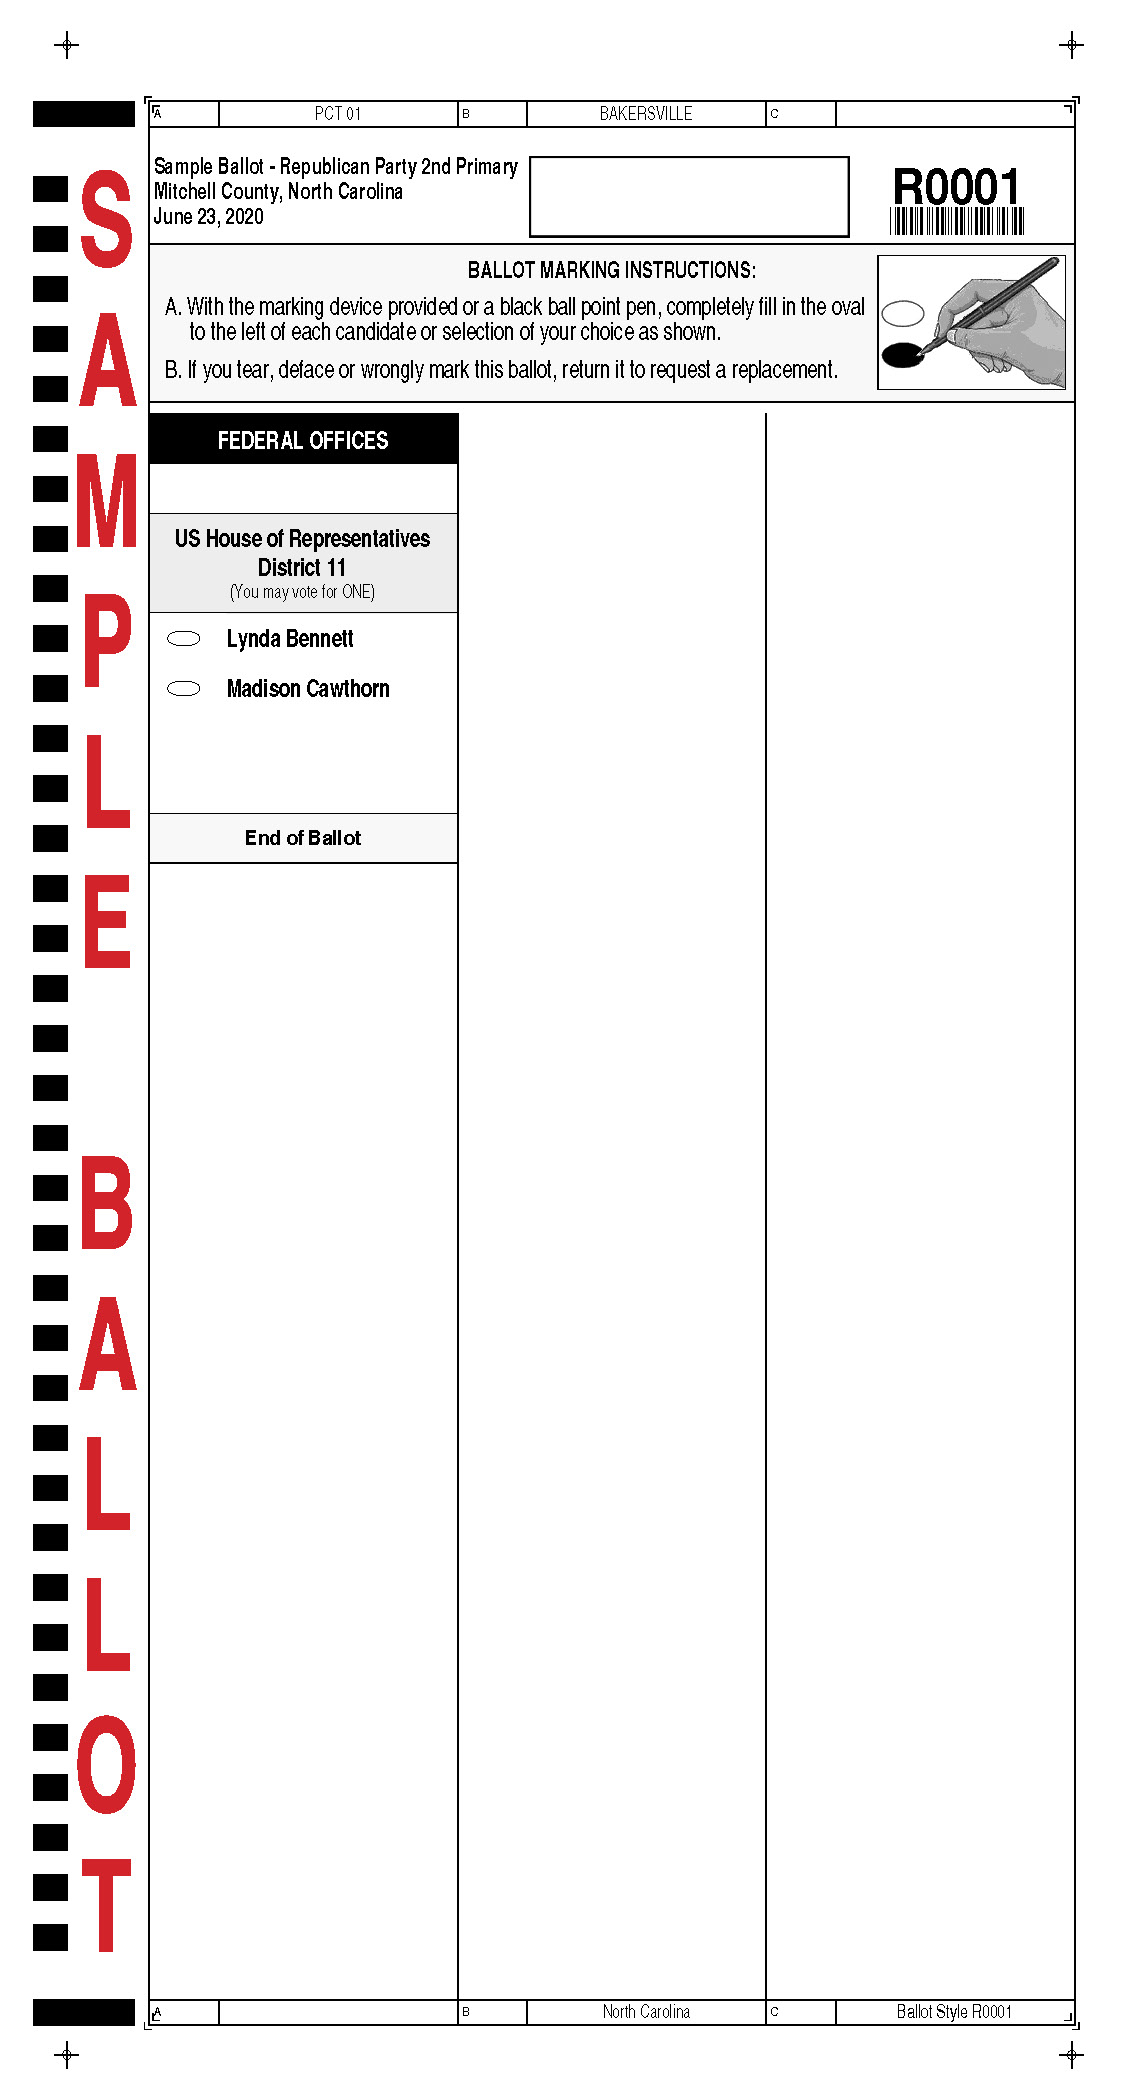 Bennett Nc Christmas Parade 2020 Day, voting locations changed for June runoff | The Mitchell News